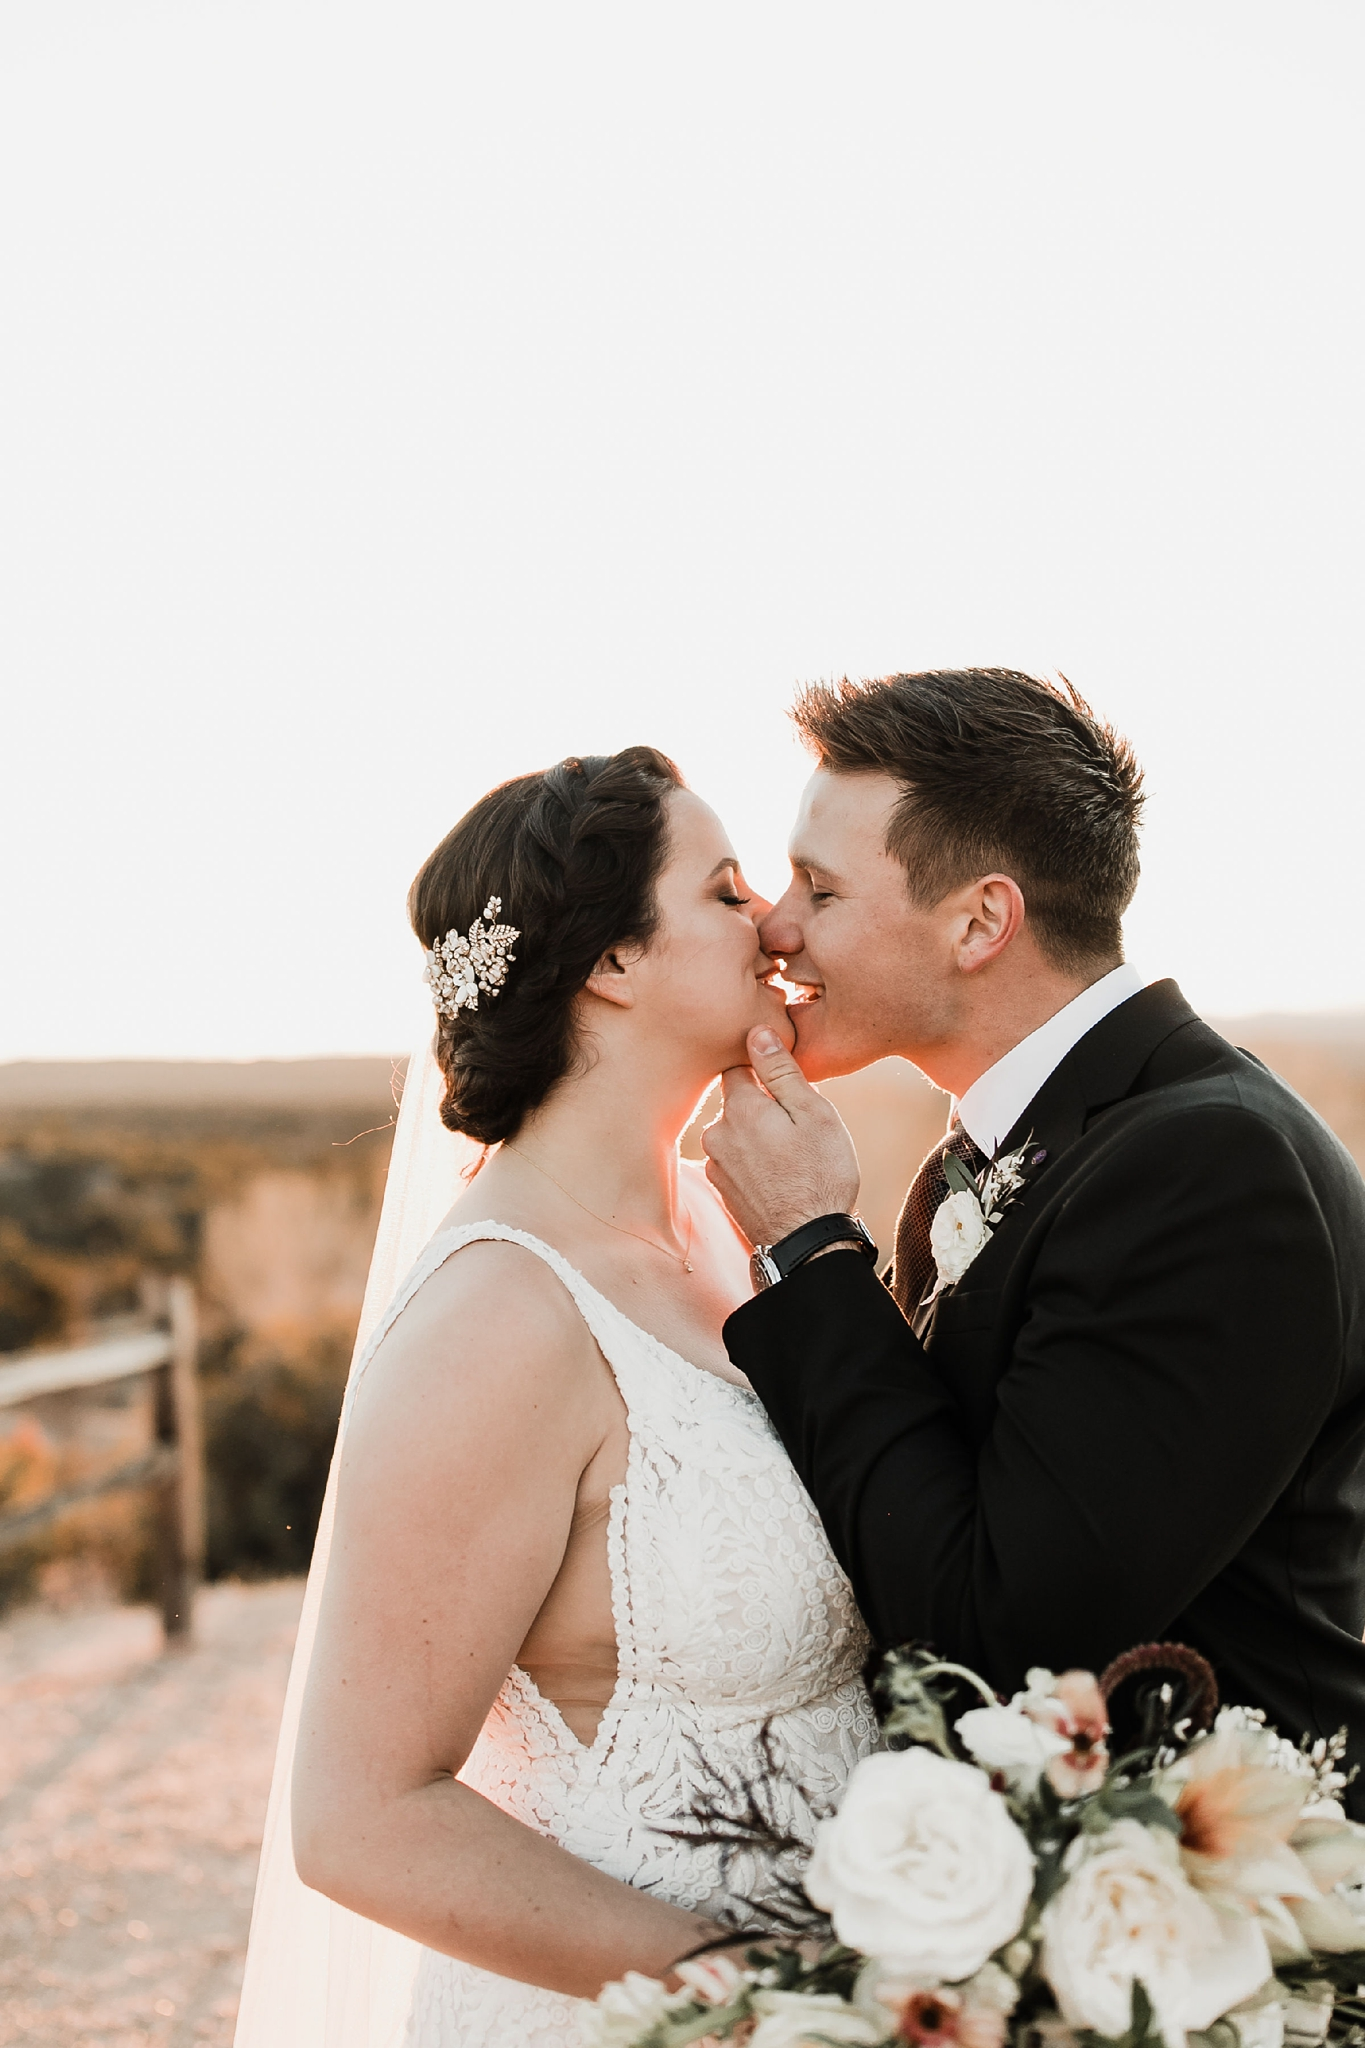 Alicia+lucia+photography+-+albuquerque+wedding+photographer+-+santa+fe+wedding+photography+-+new+mexico+wedding+photographer+-+new+mexico+wedding+-+albuquerque+wedding+-+santa+fe+wedding+-+wedding+romantics_0006.jpg